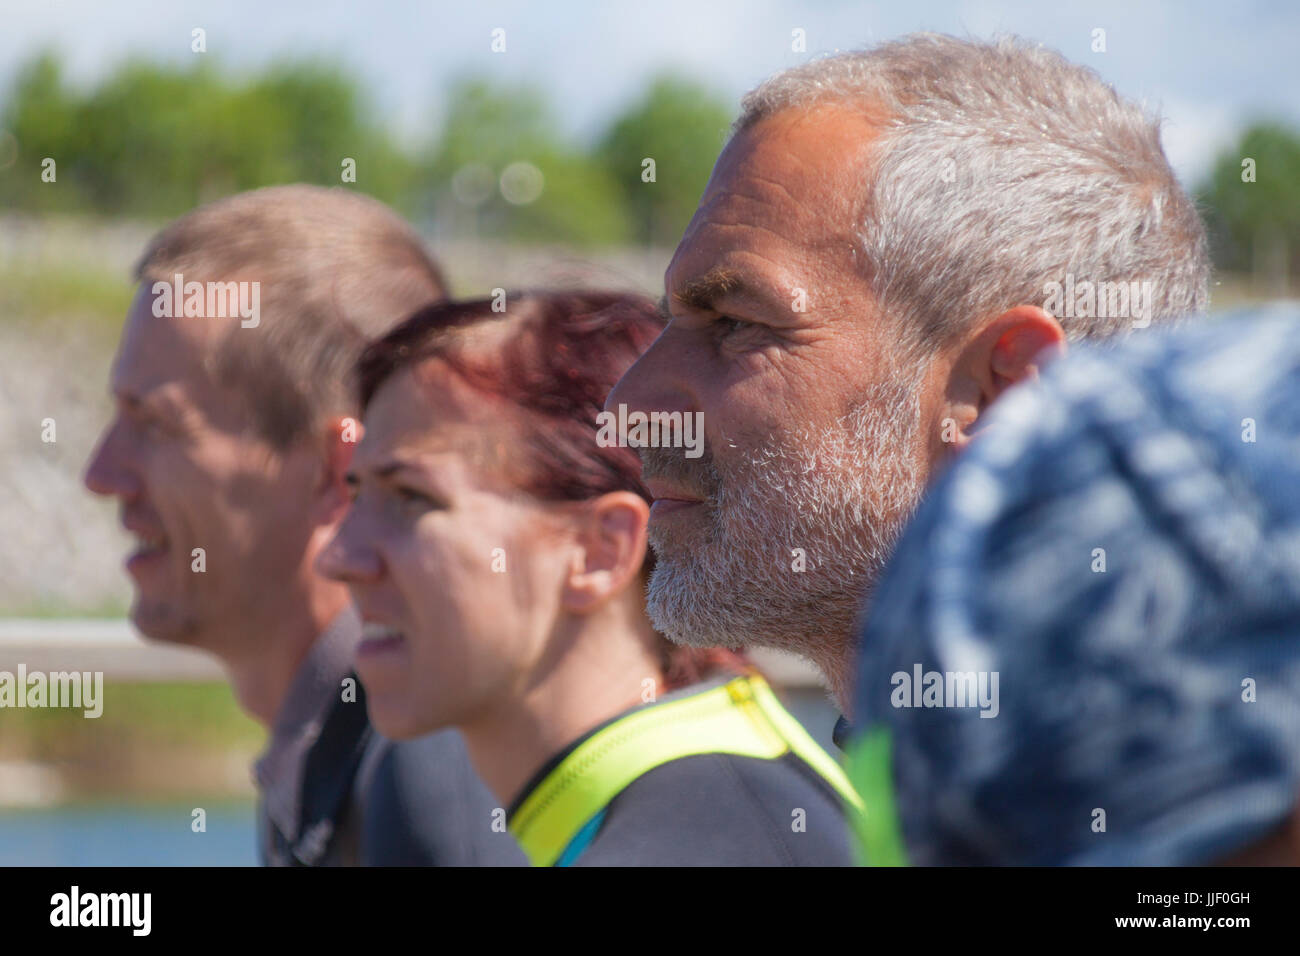 Three people looking into distance - Stock Image